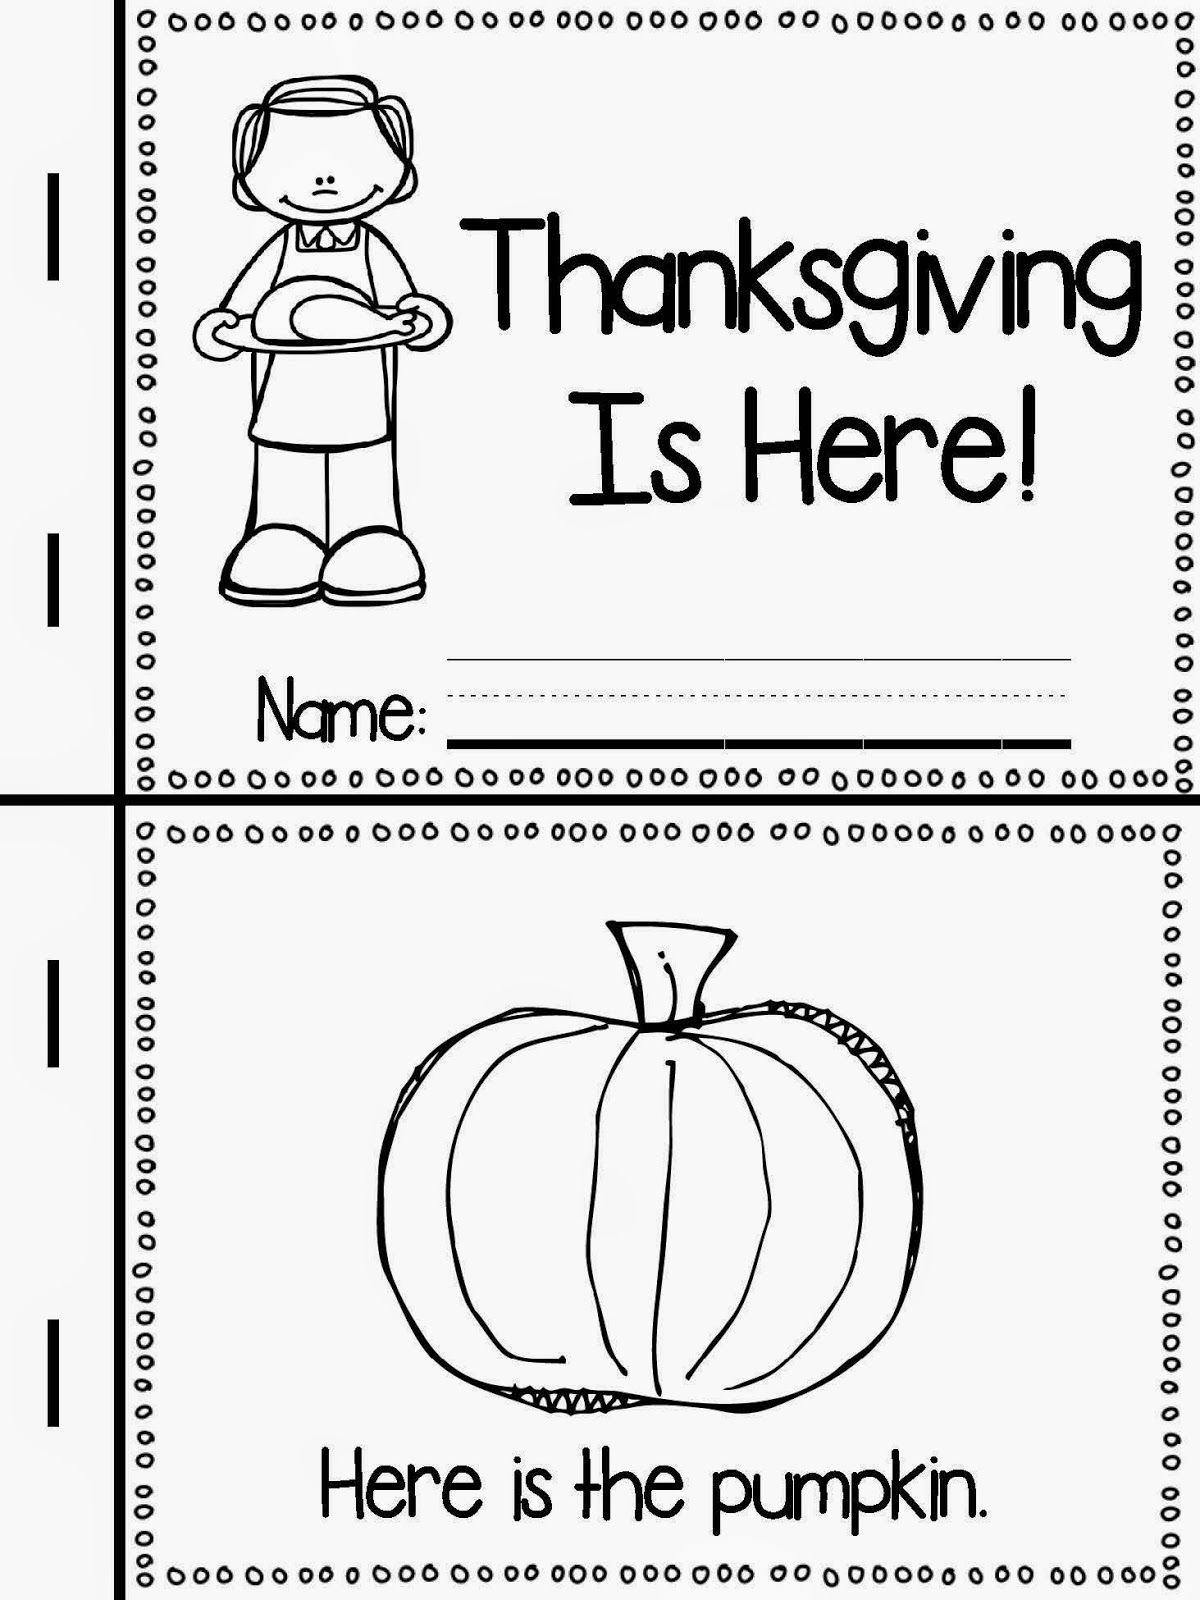 Free Emergent Reader For Thanksgiving In With Images